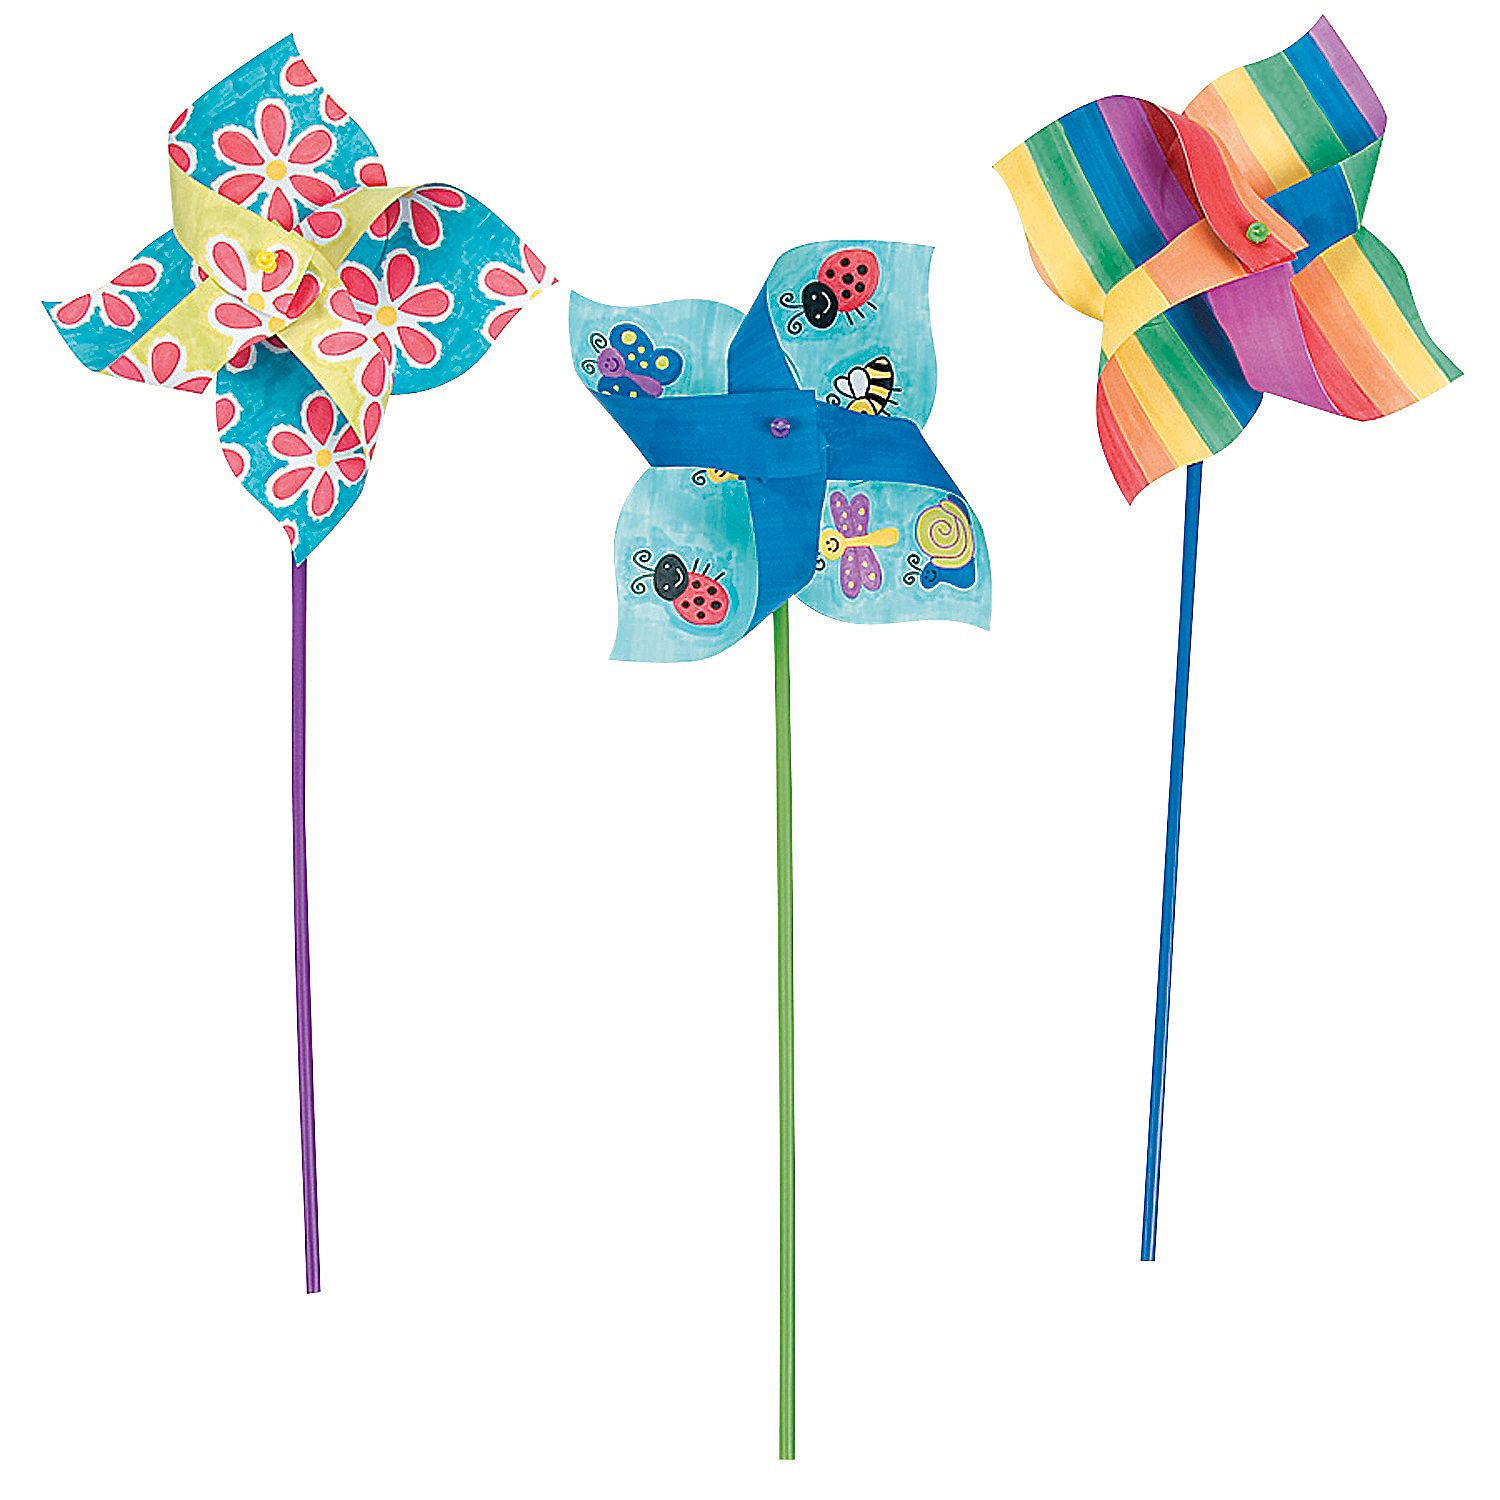 Tween Craft: Pinwheels